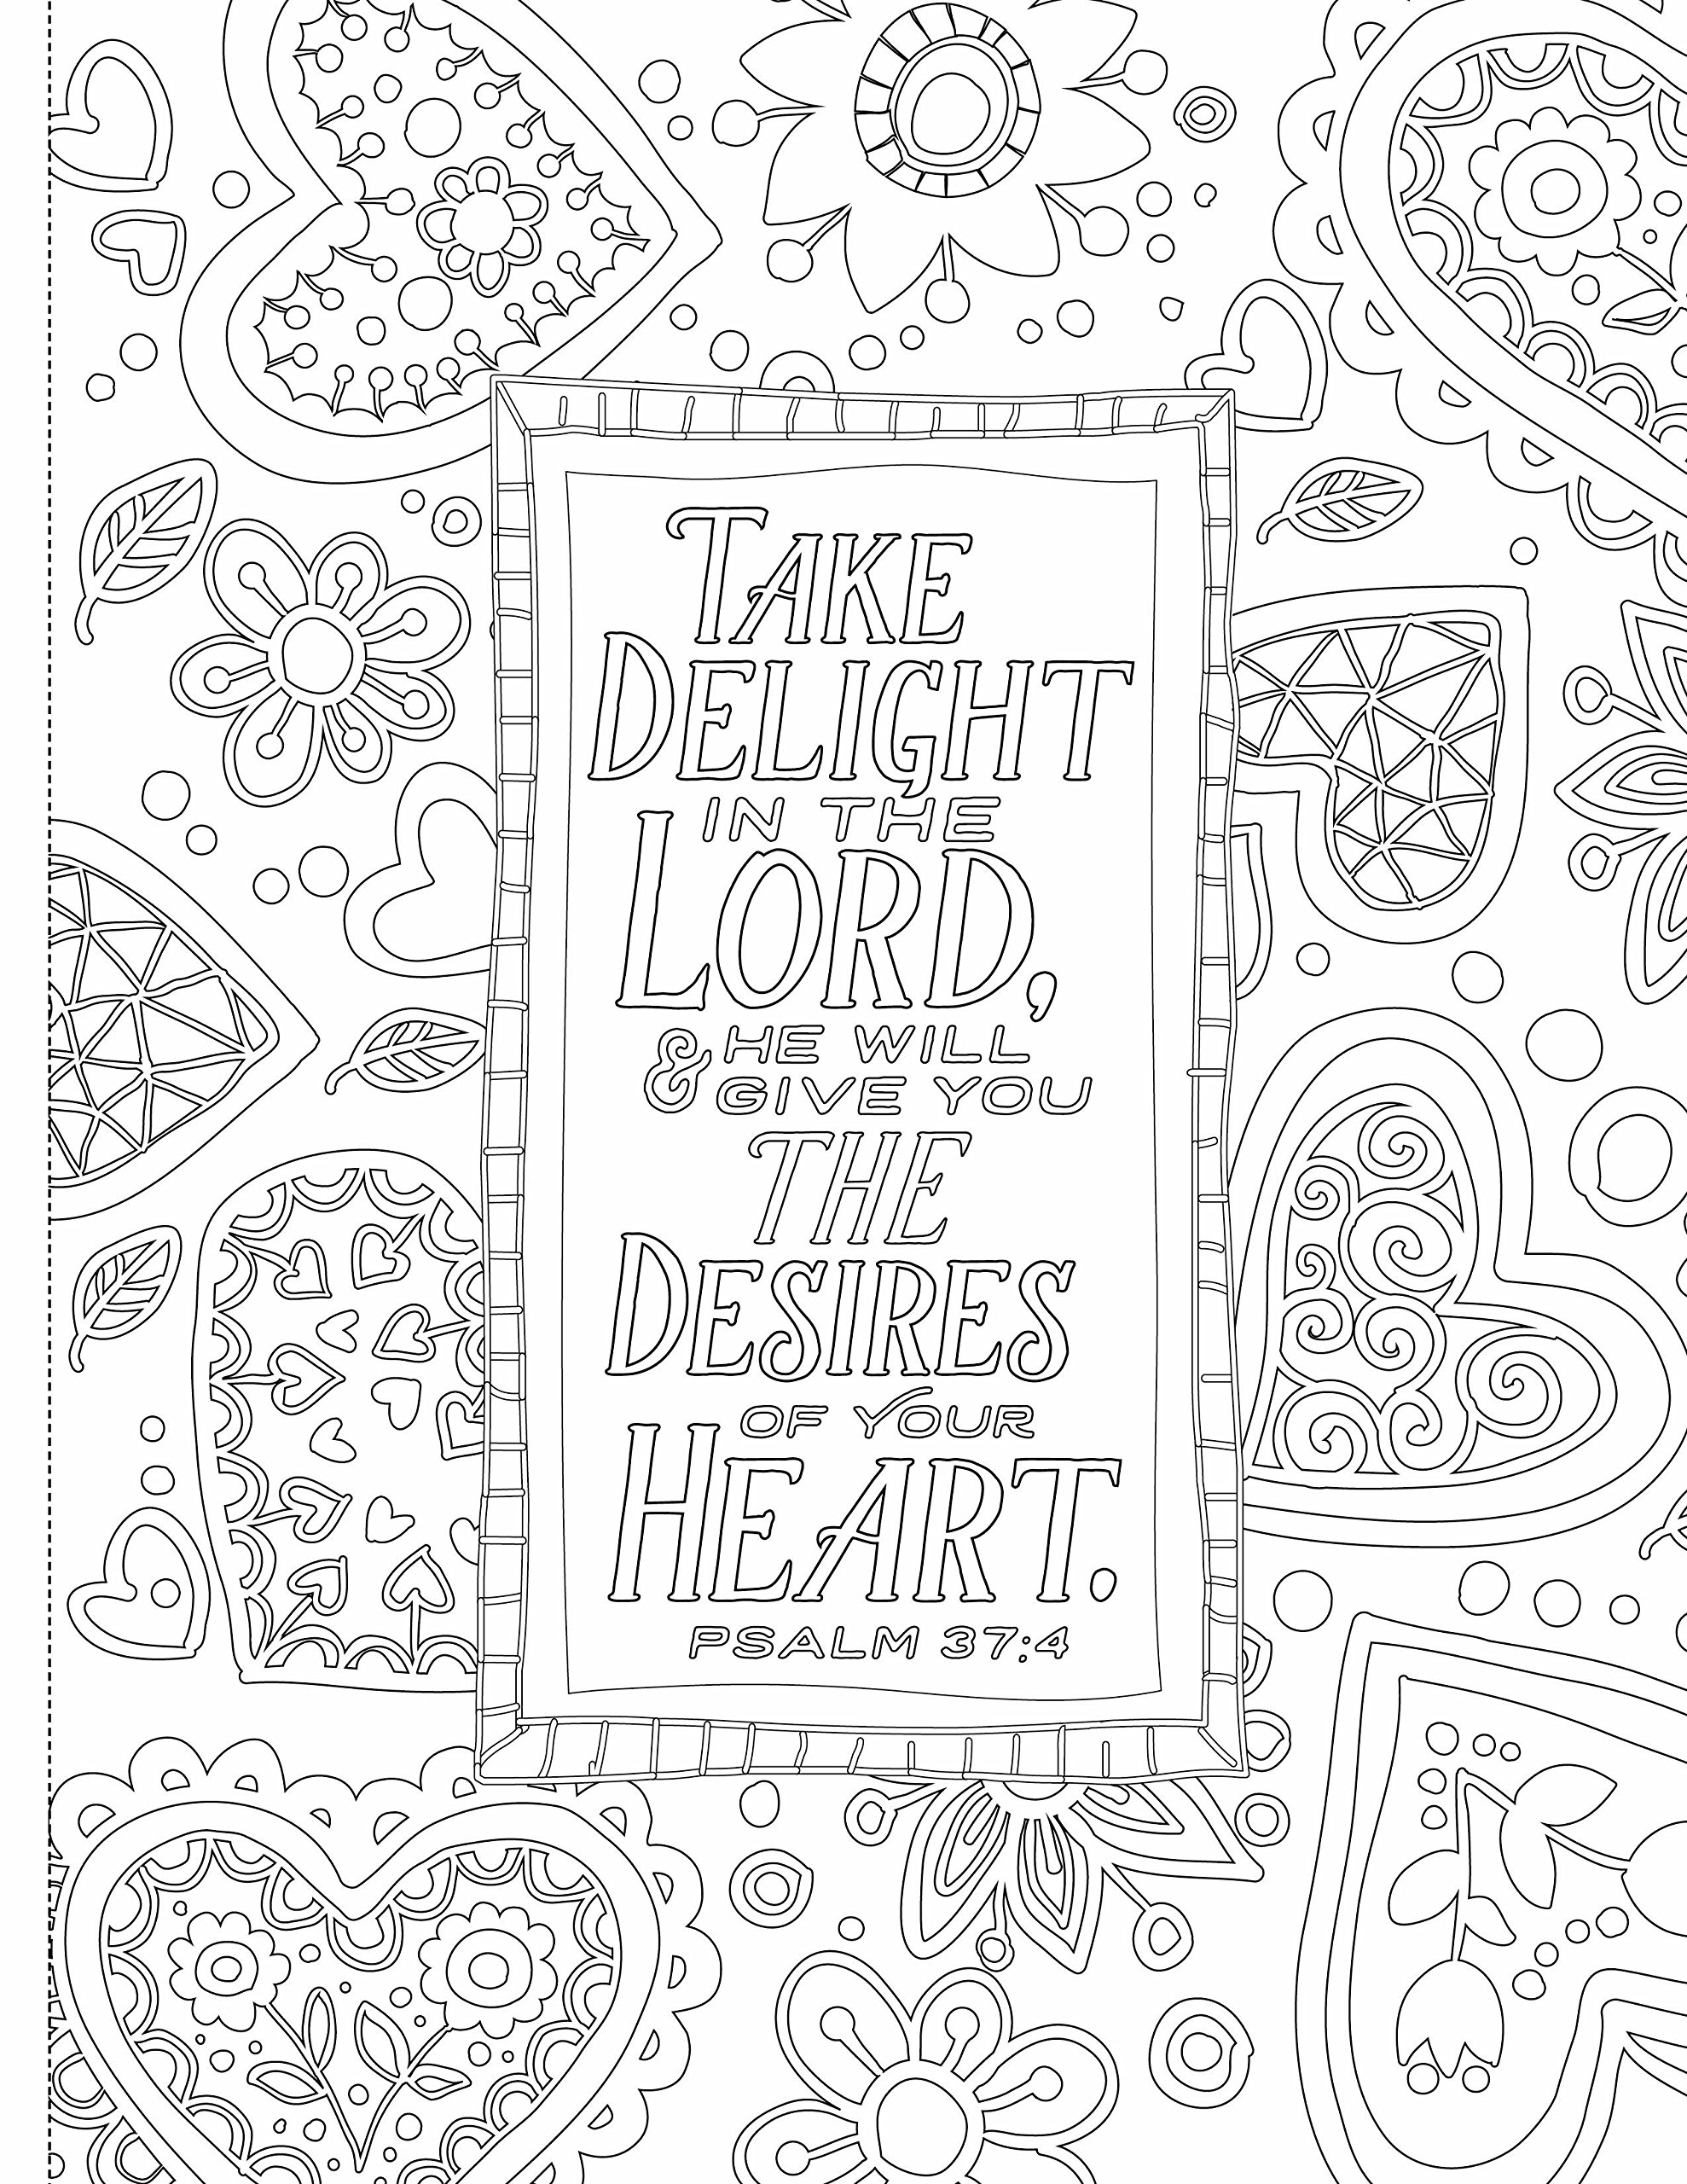 Inspiring words coloring book 30 verses from the bible you can color zondervan 9780310757283 amazon com books